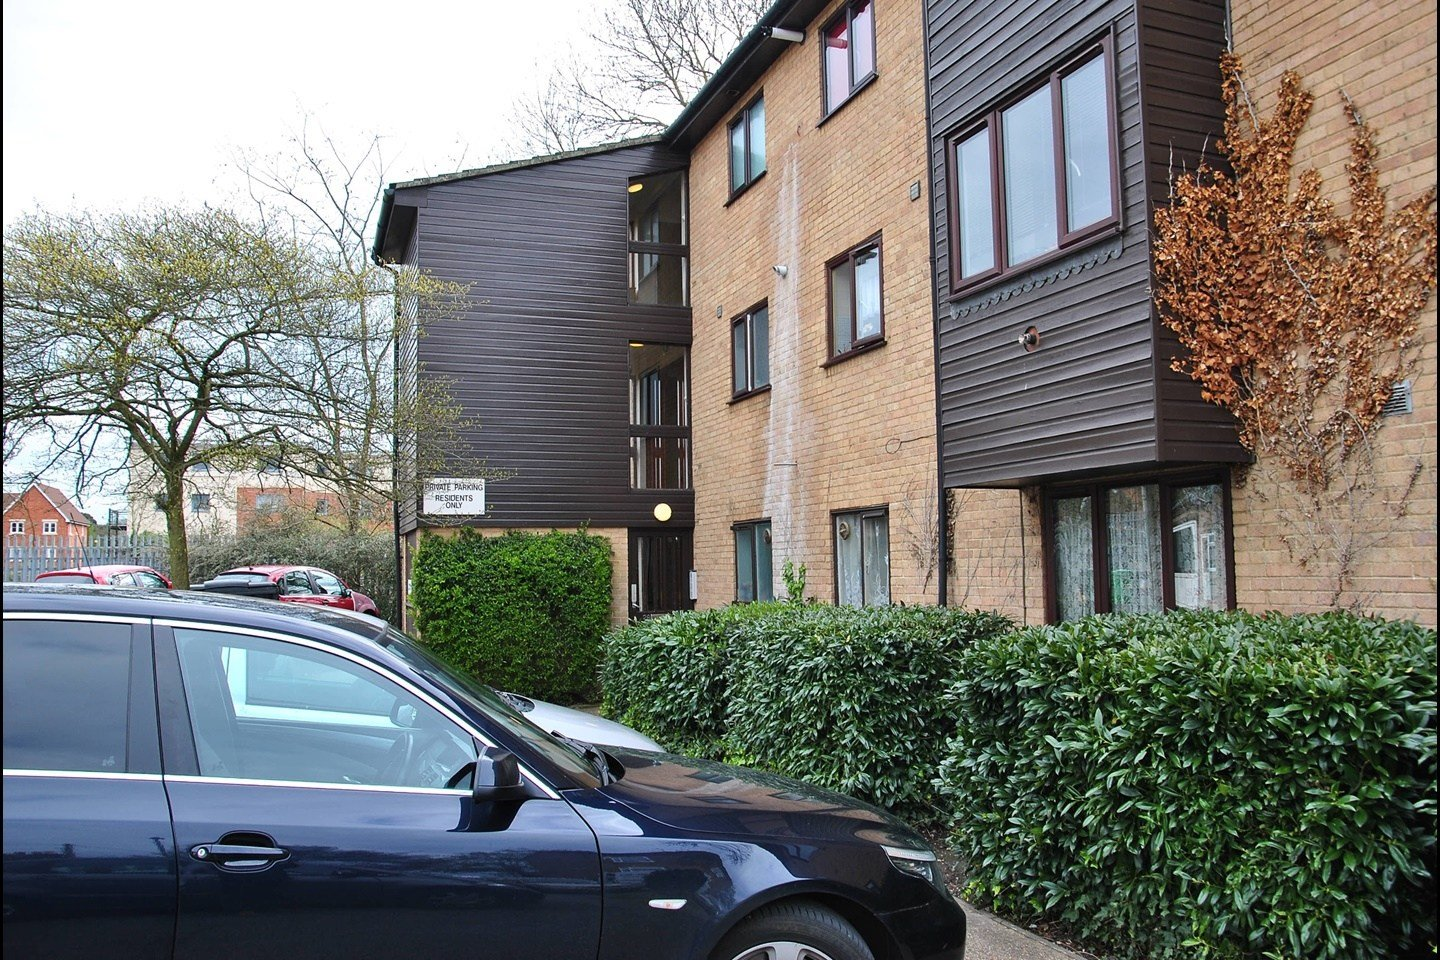 Best Slough 1 Bed Flat Slough Sl2 To Rent Now For £900 00 P M With Pictures